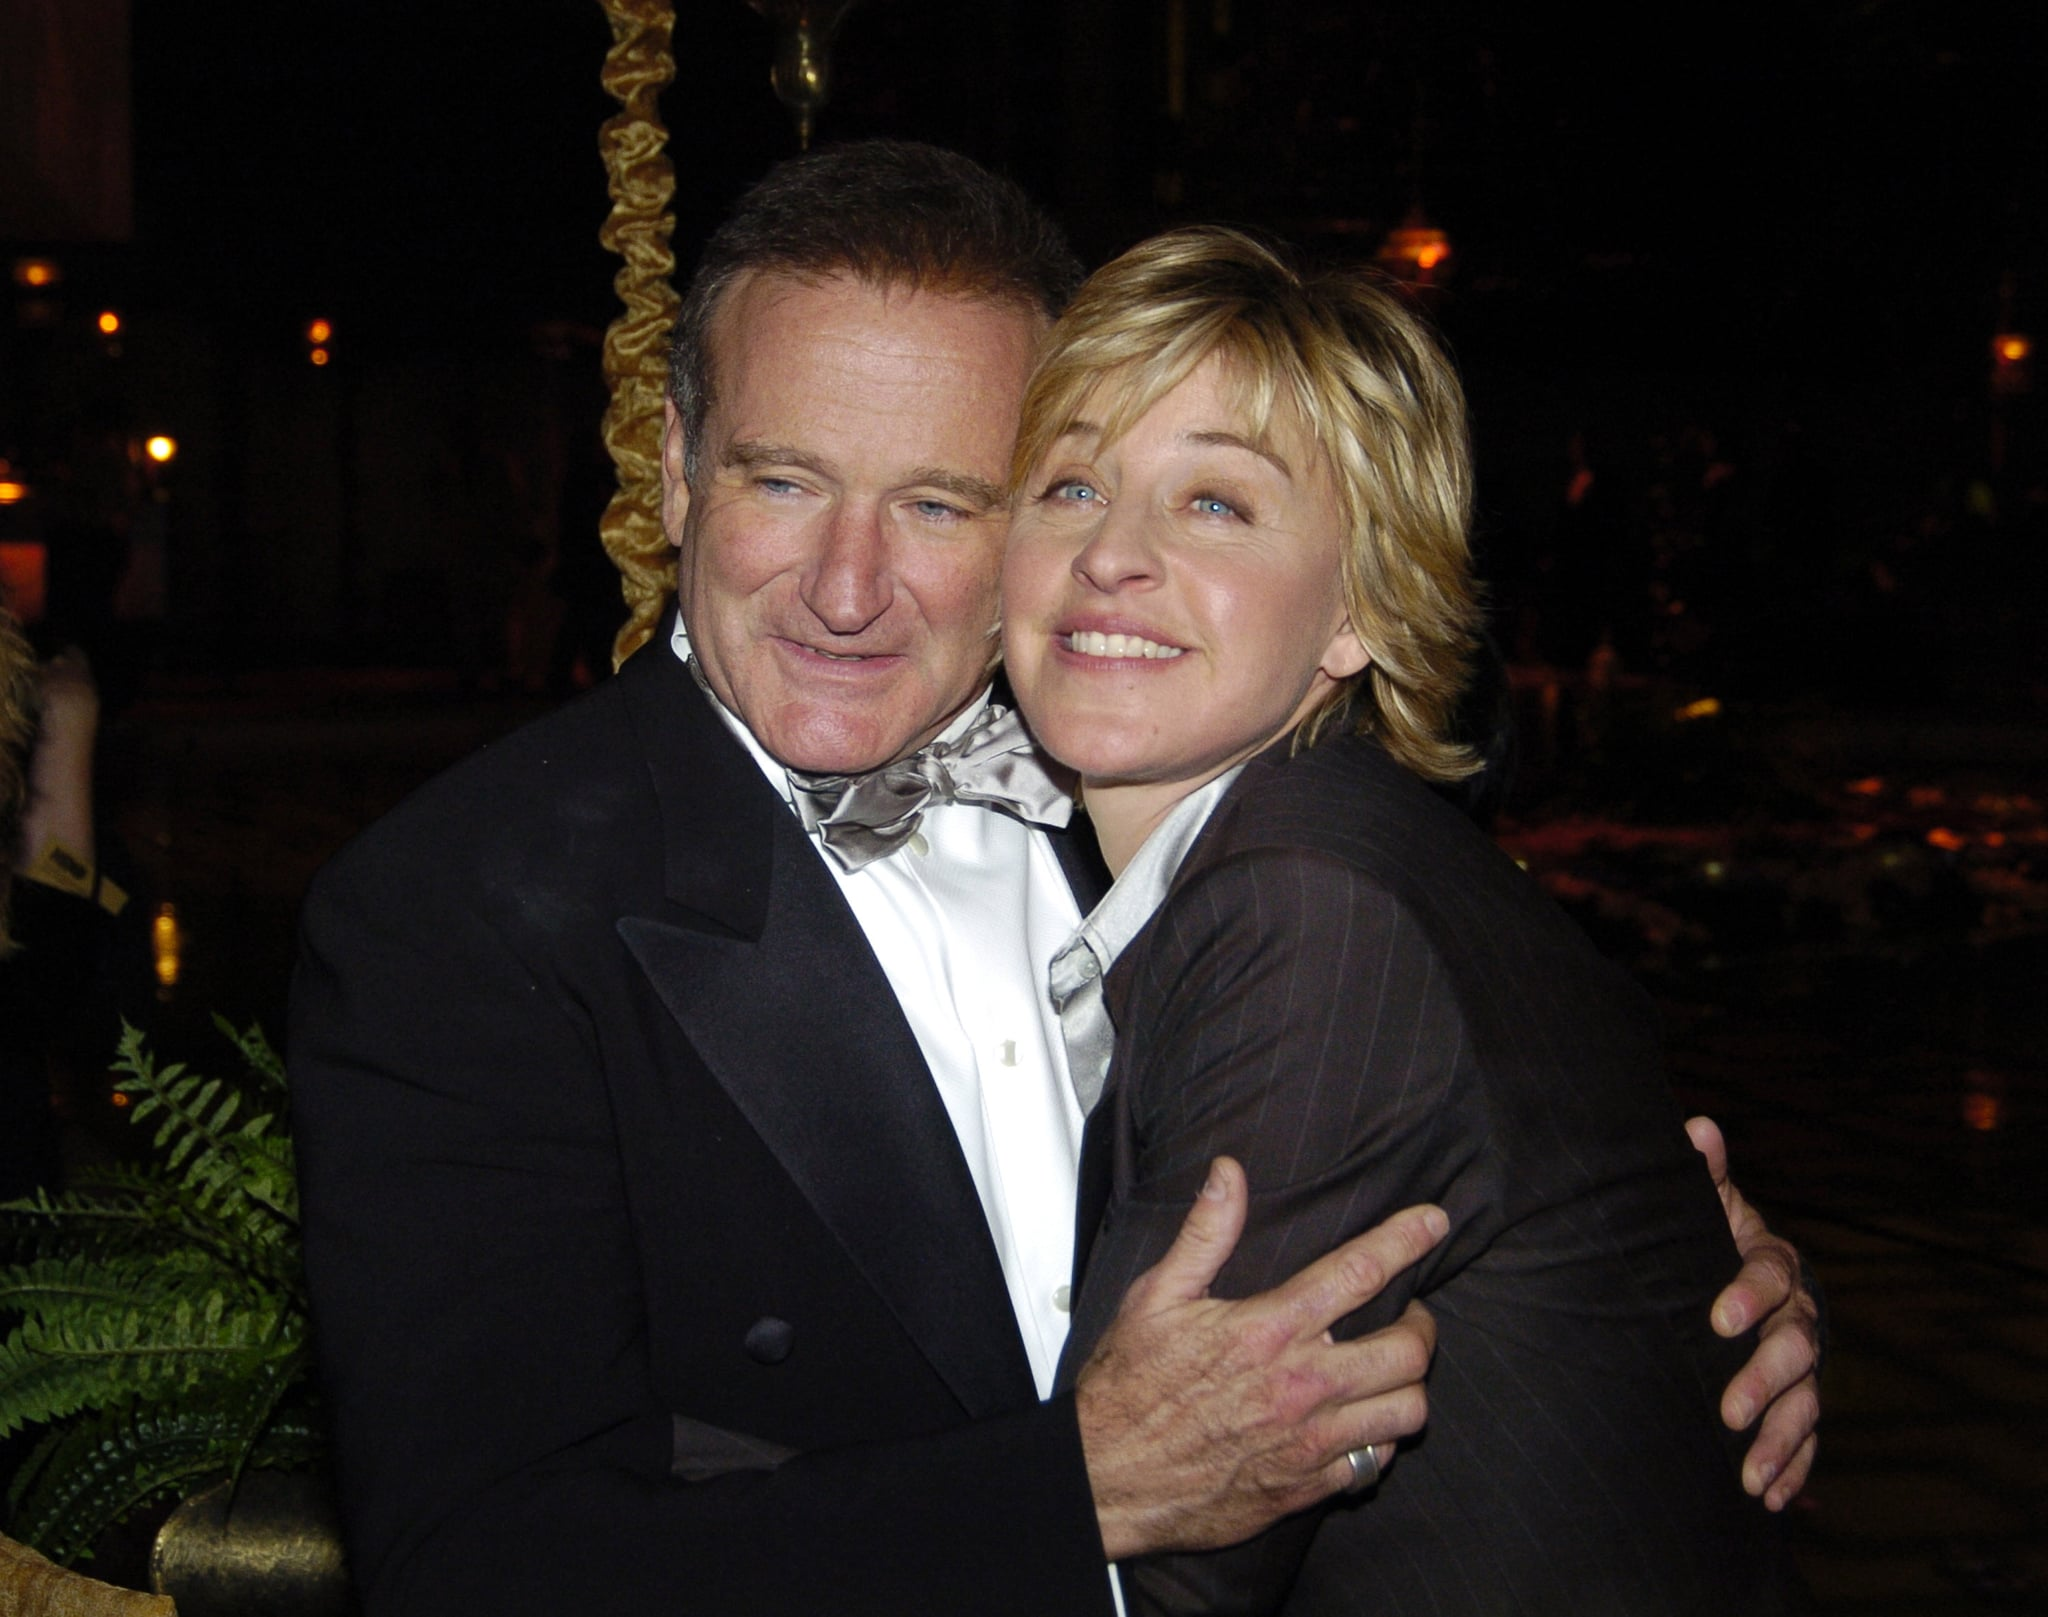 Robin shared a sweet hug with Ellen DeGeneres at HBO's Golden Globes afterparty in January 2005.